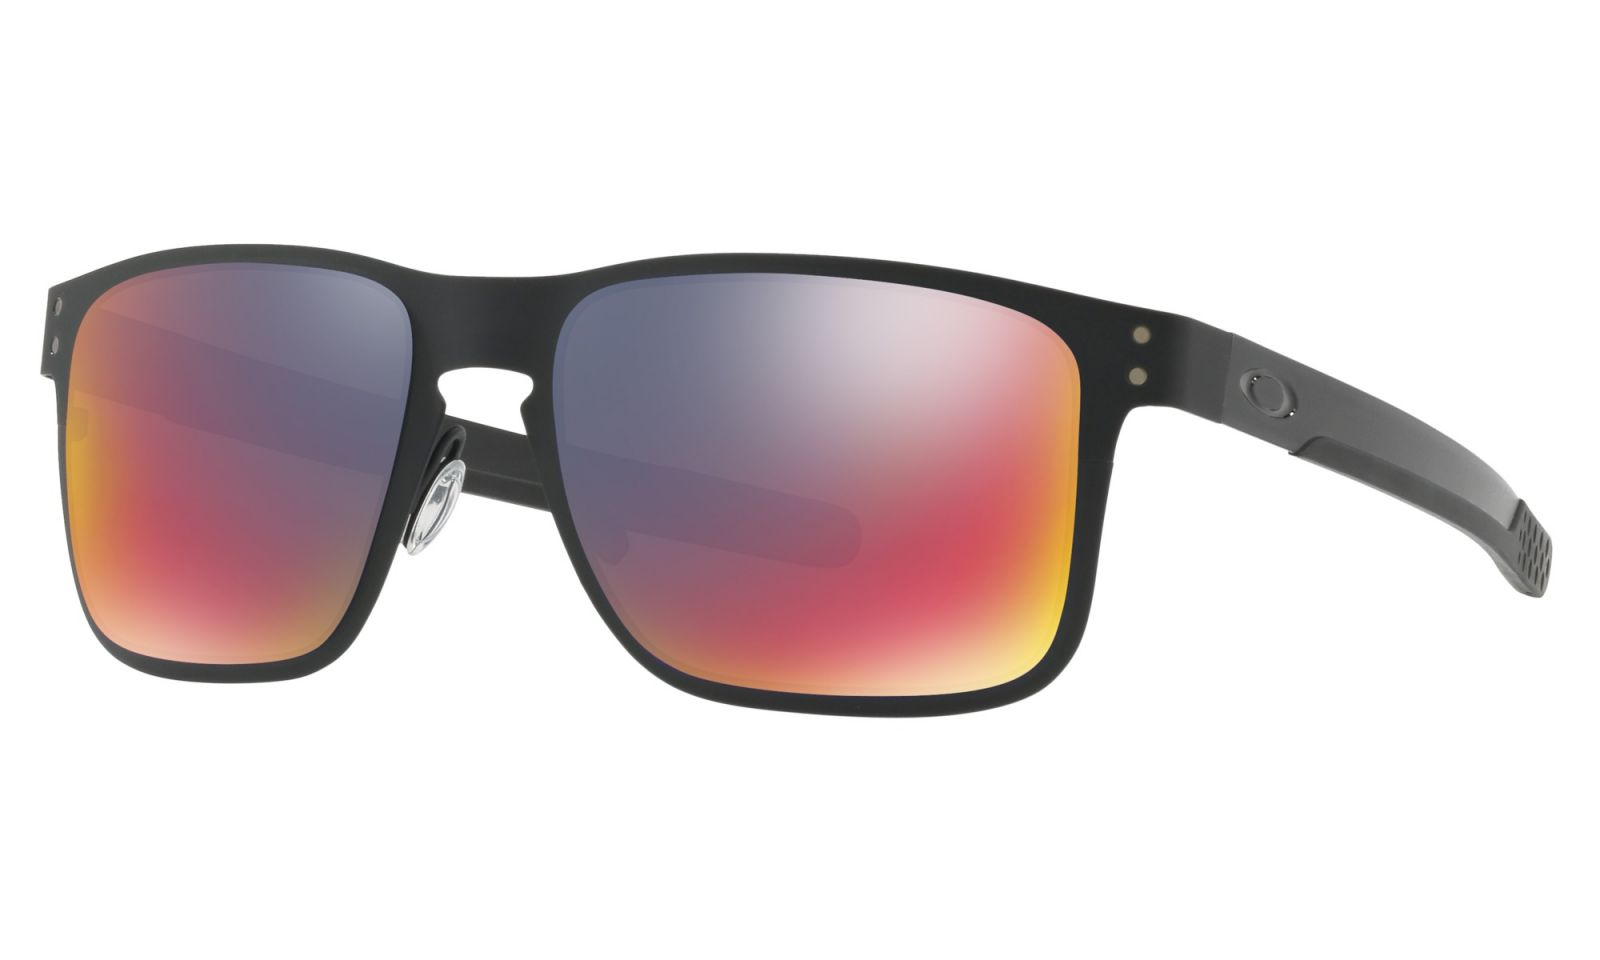 Brýle OAKLEY Holbrook - Metal Matte Black/Positive Red Iridium